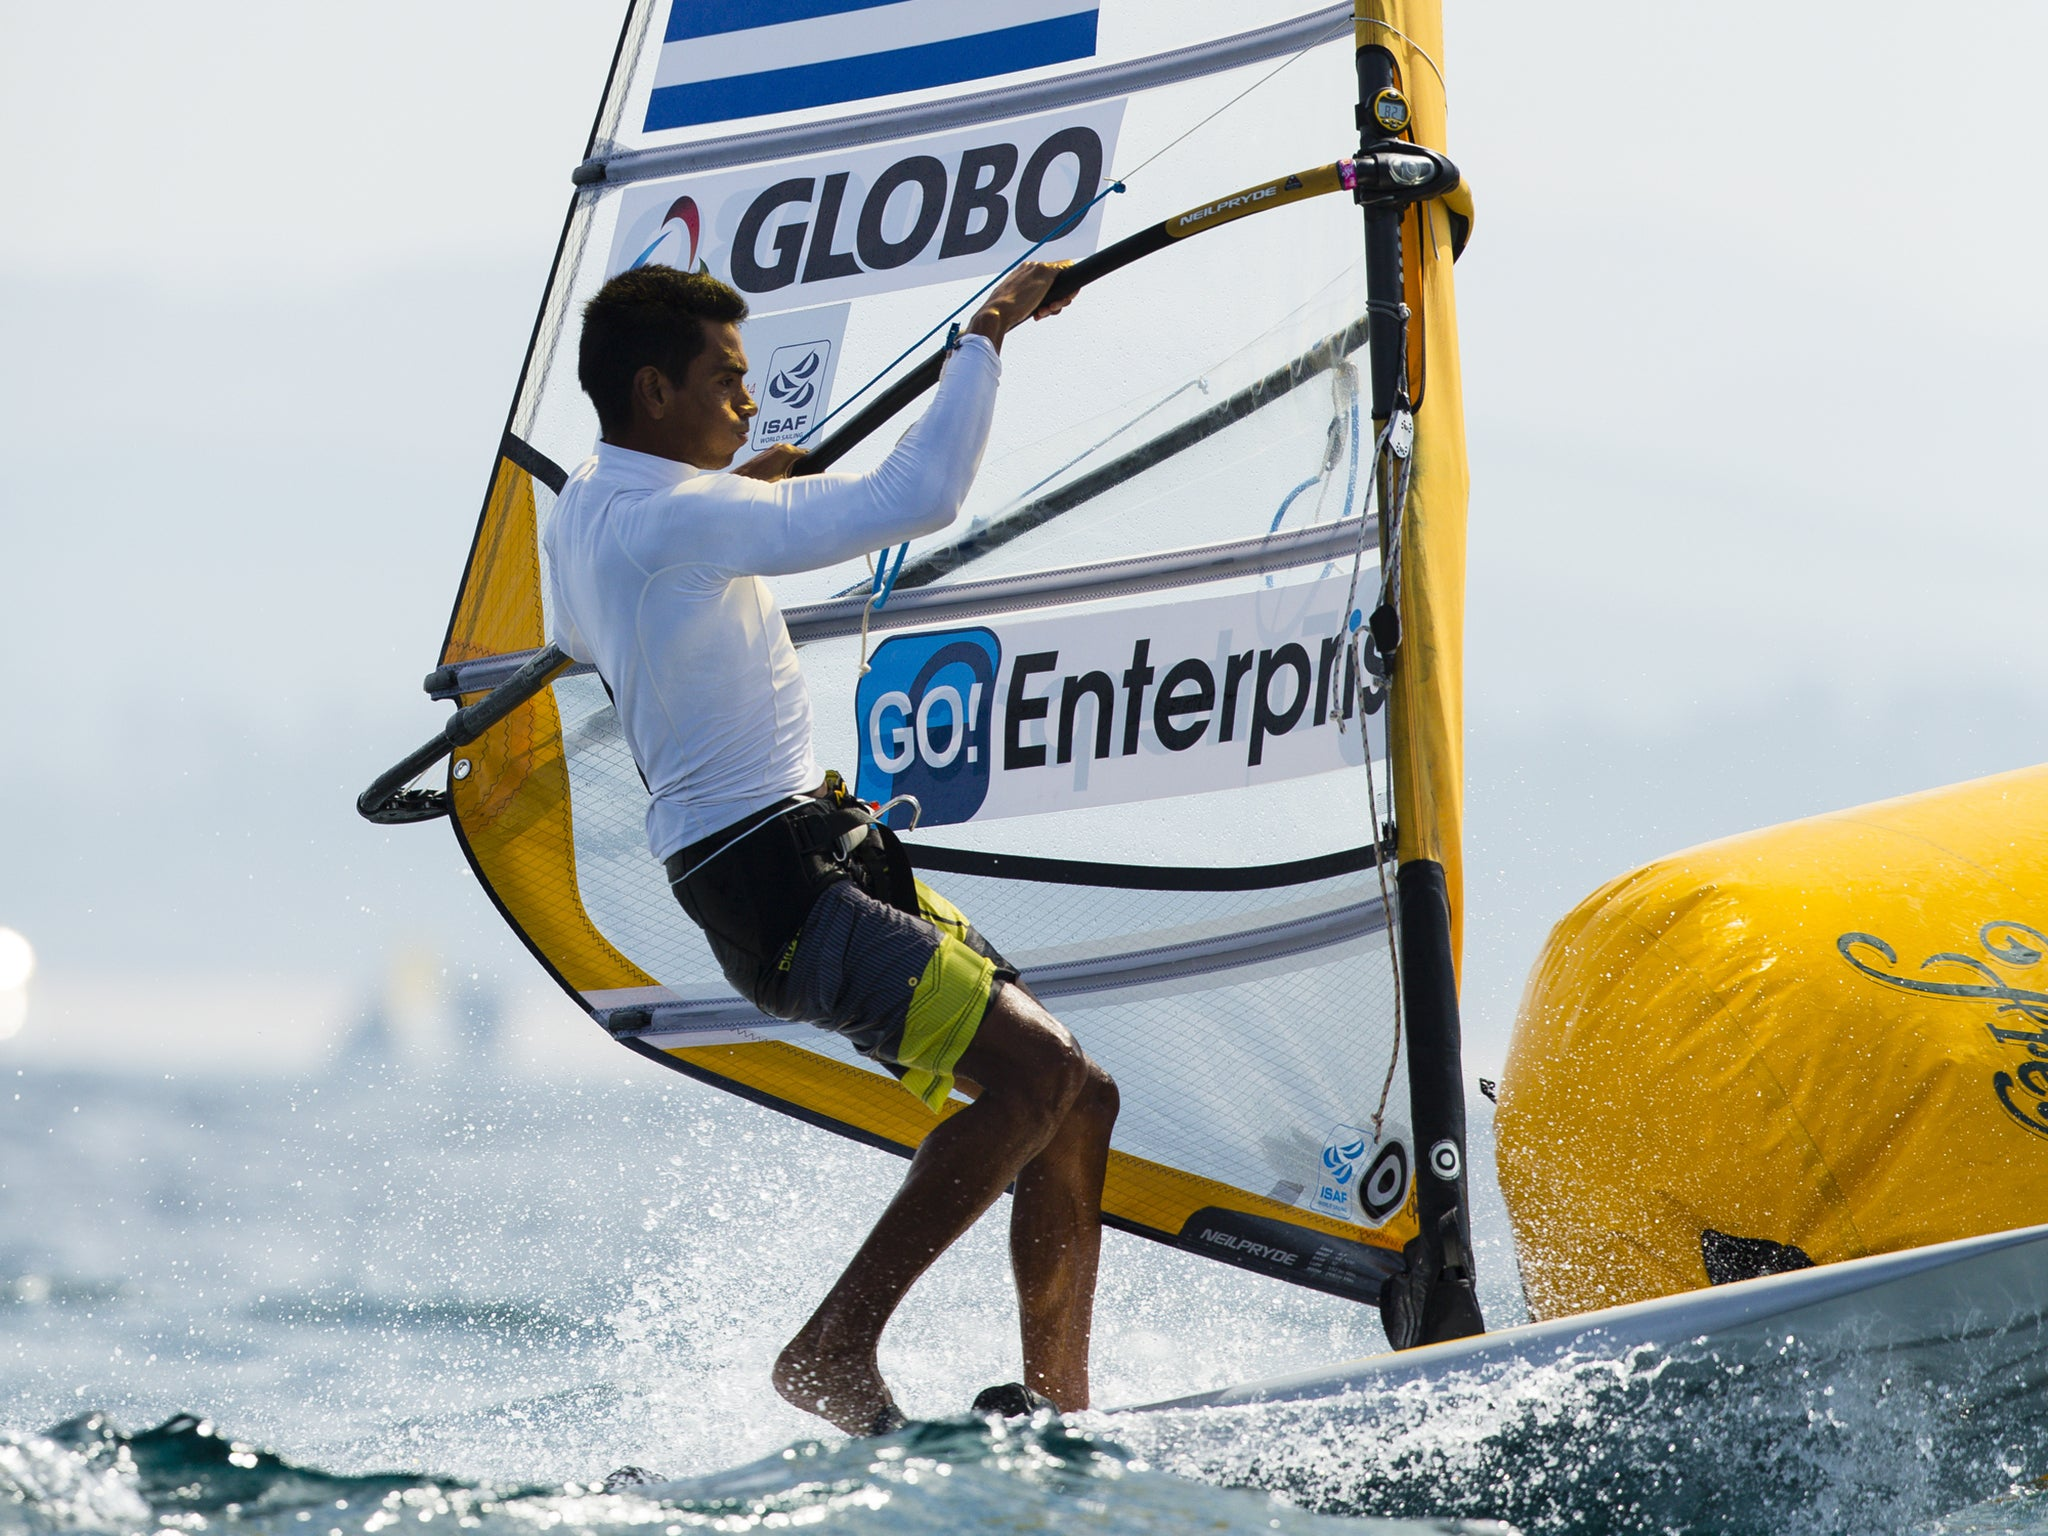 Globo sails too close to the wind   The Independent